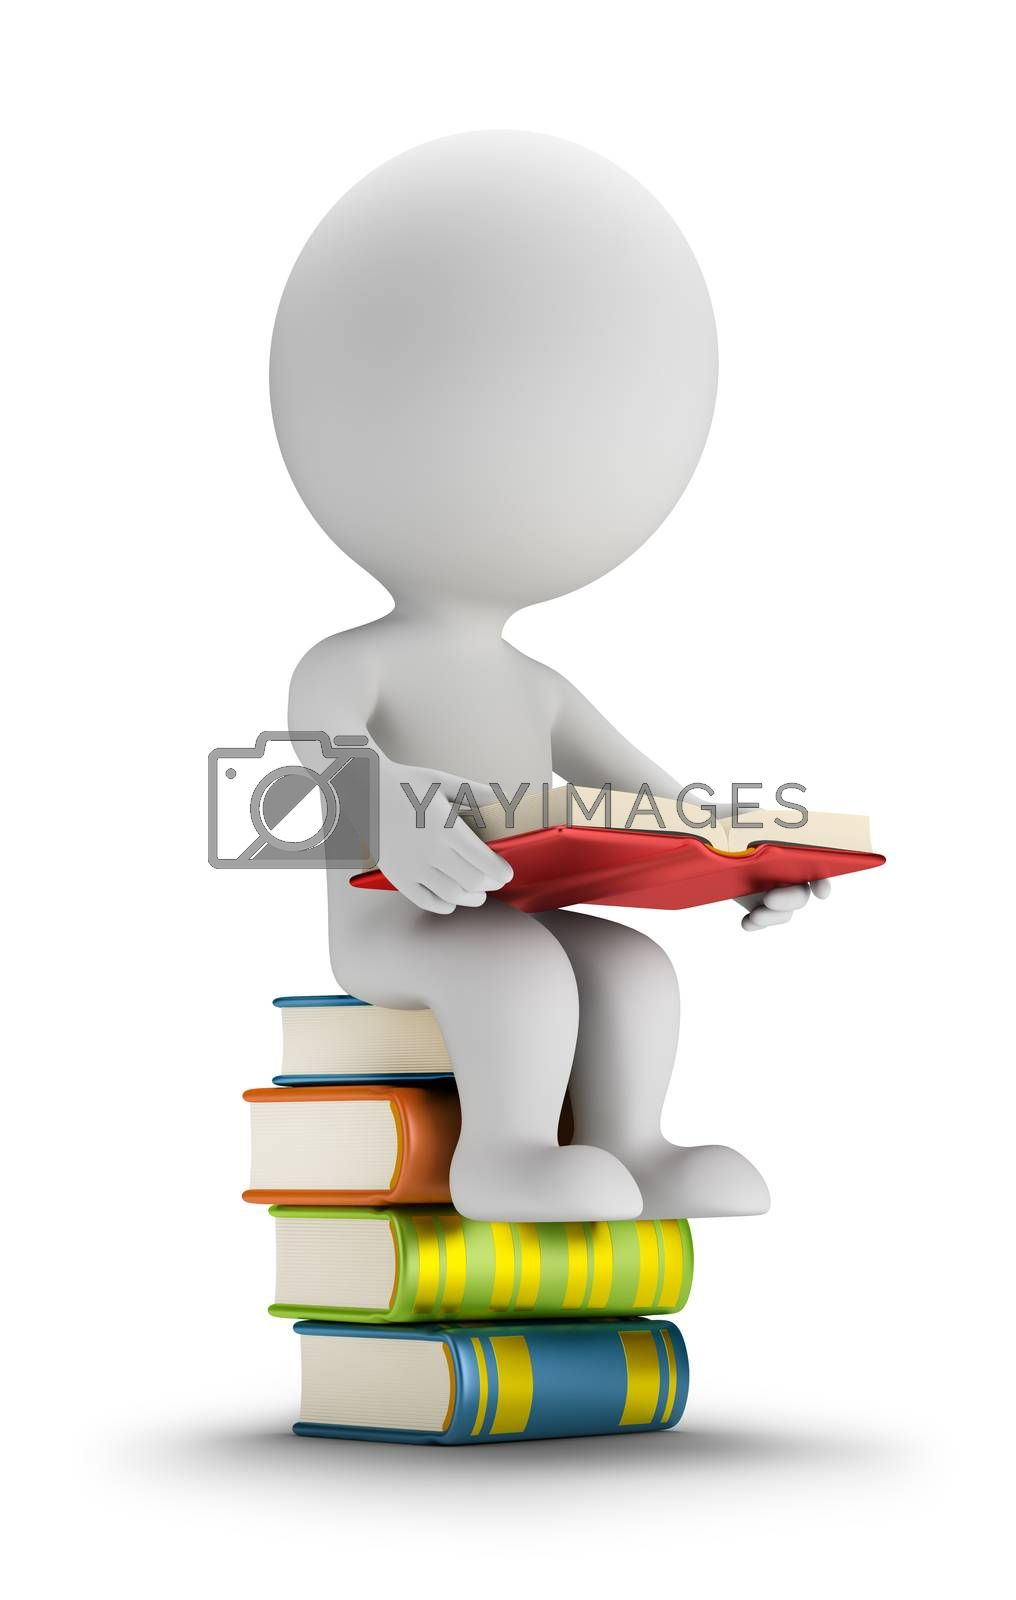 Royalty free image of 3d small people sitting on the books by Anatoly